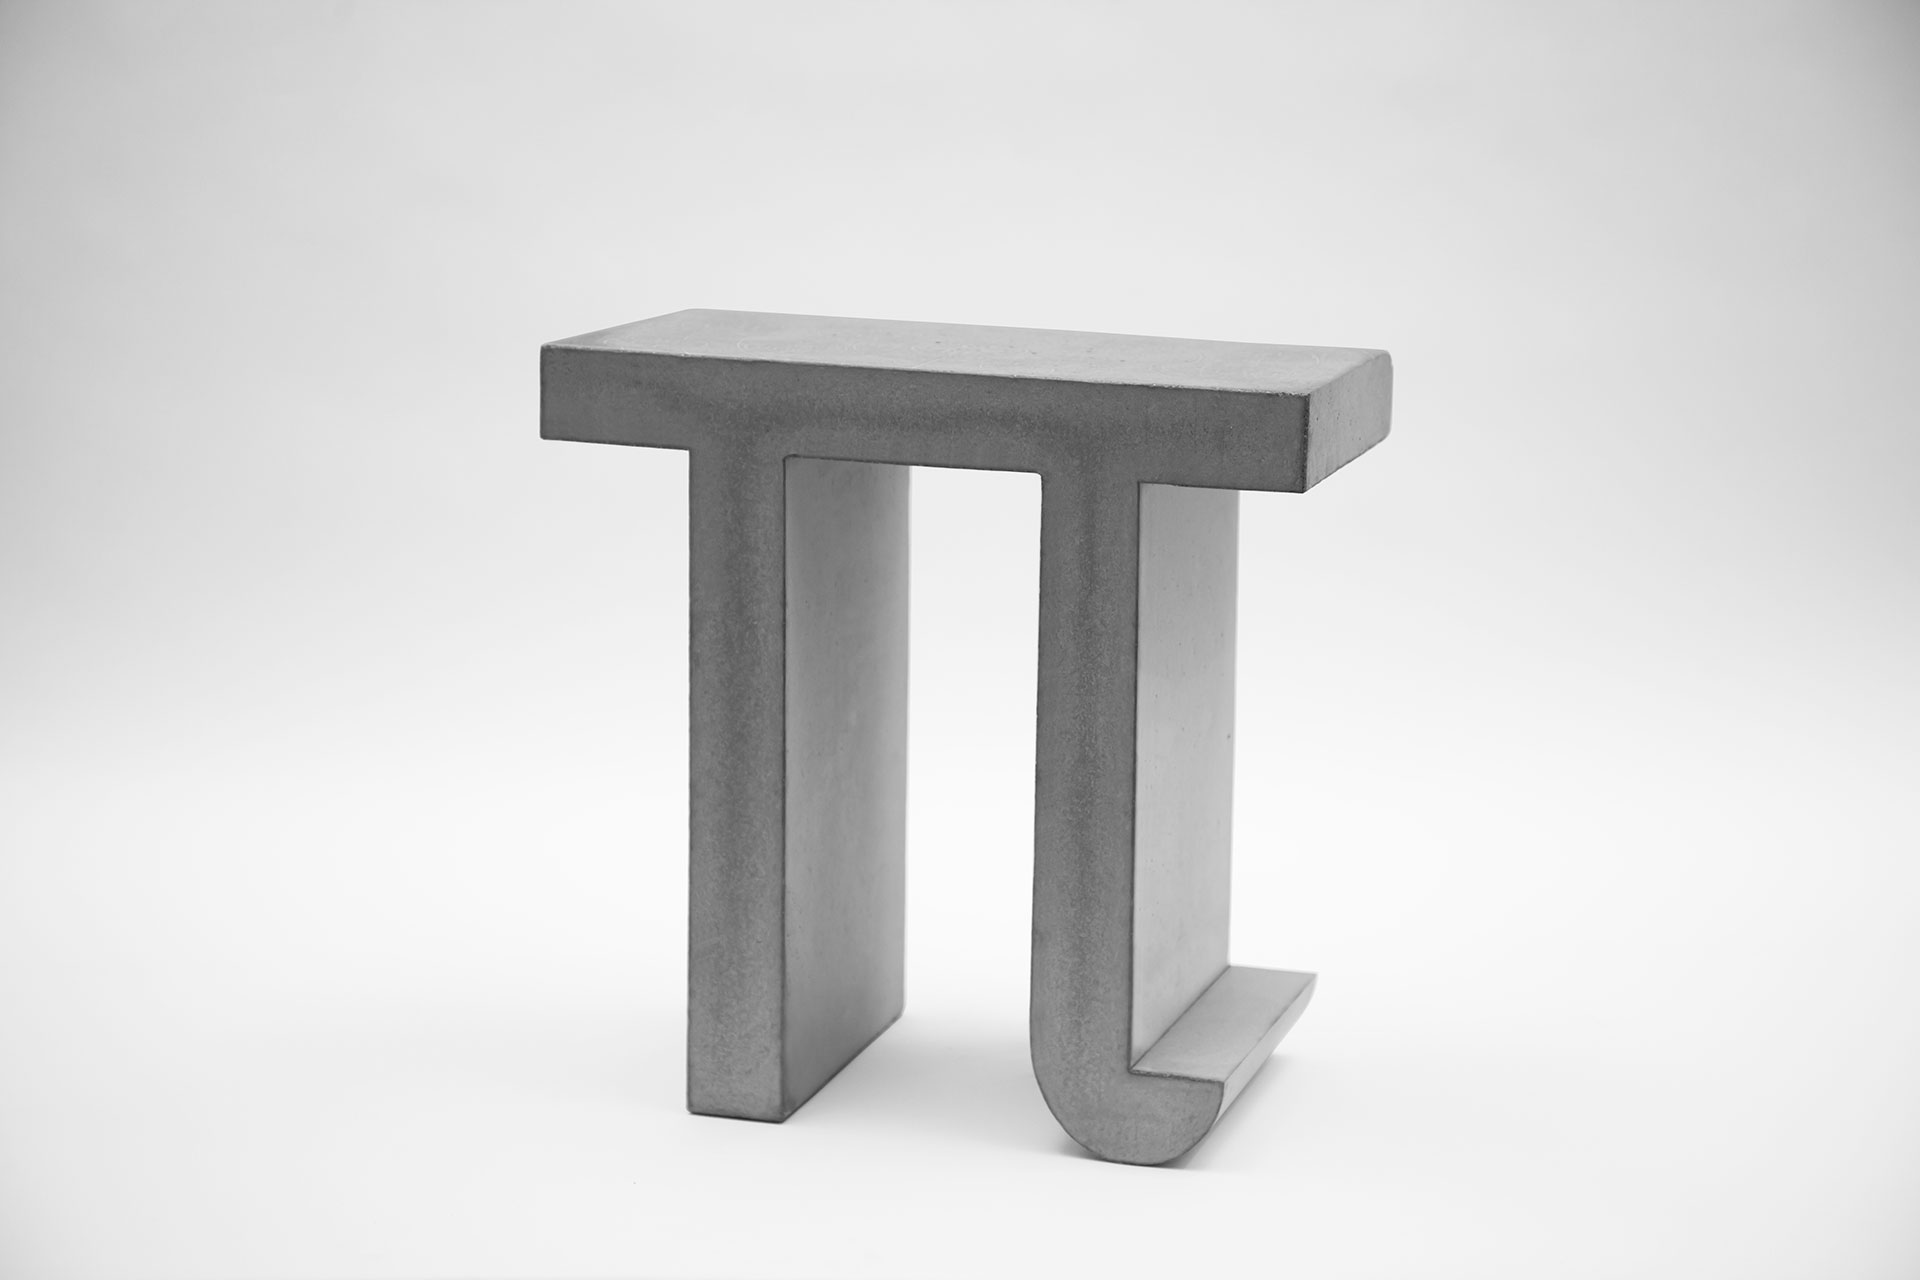 Geometric design Pi shaped stool from concrete